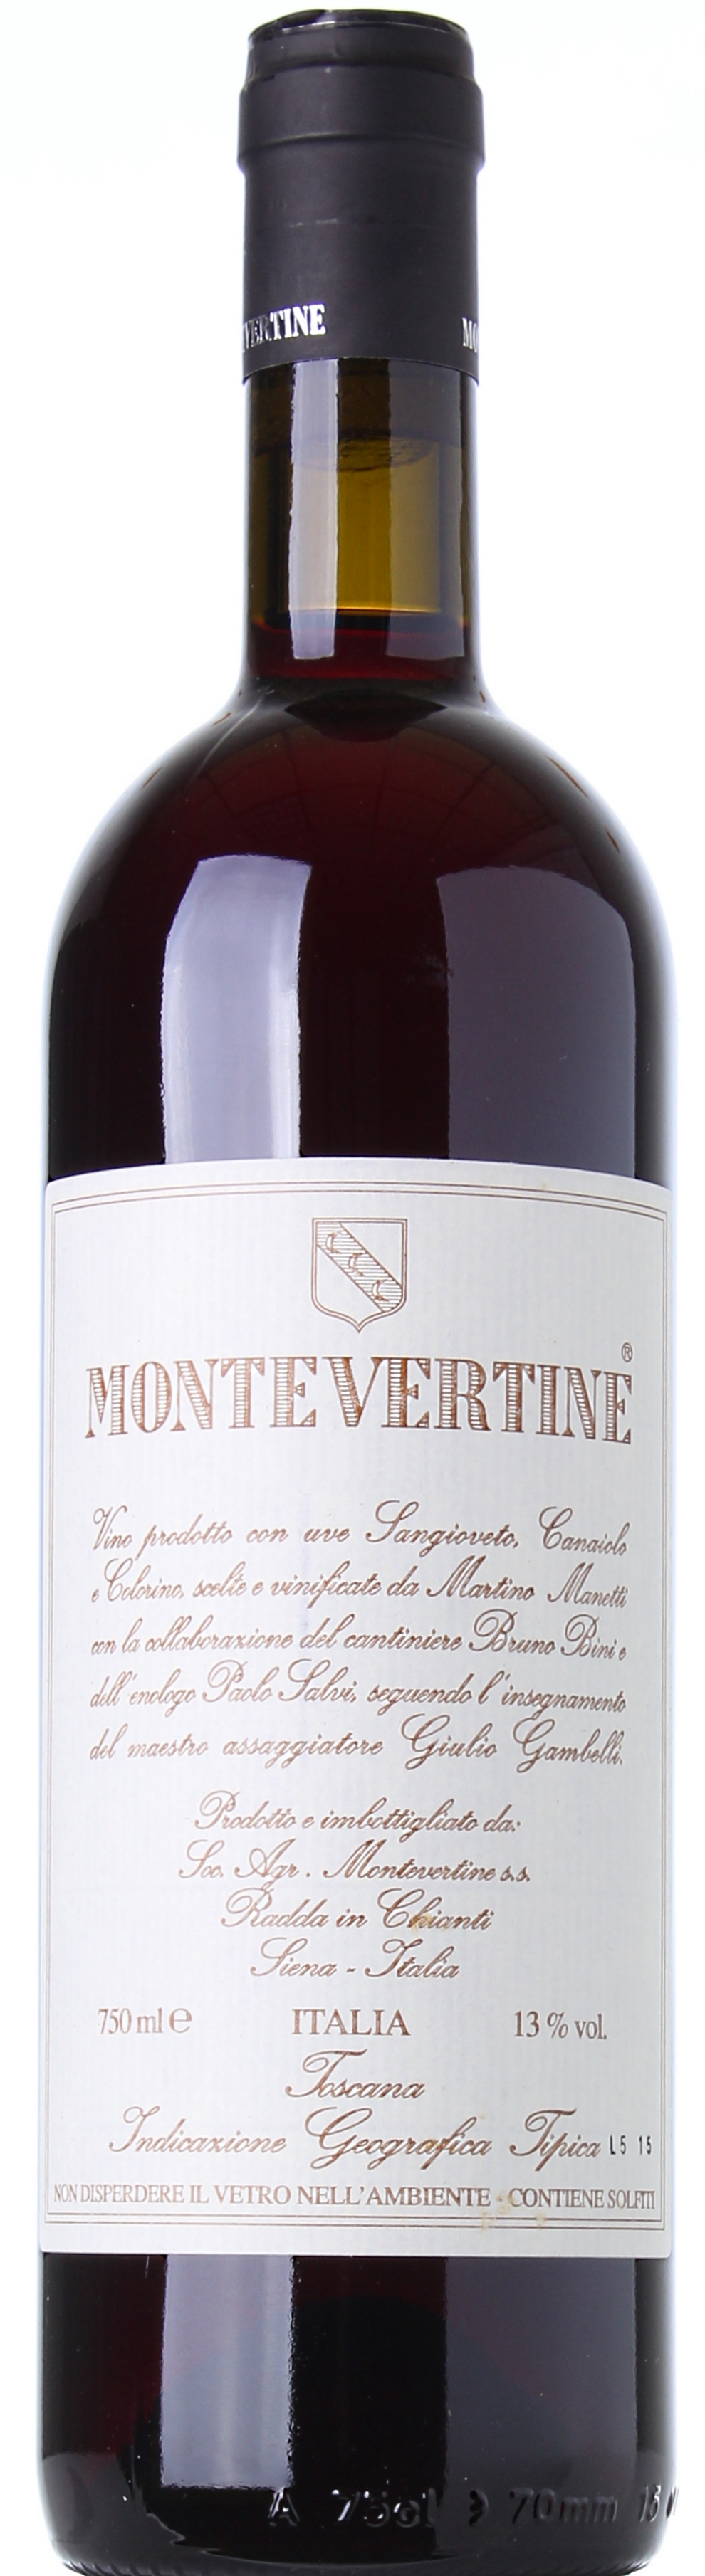 MONTEVERTINE 2012